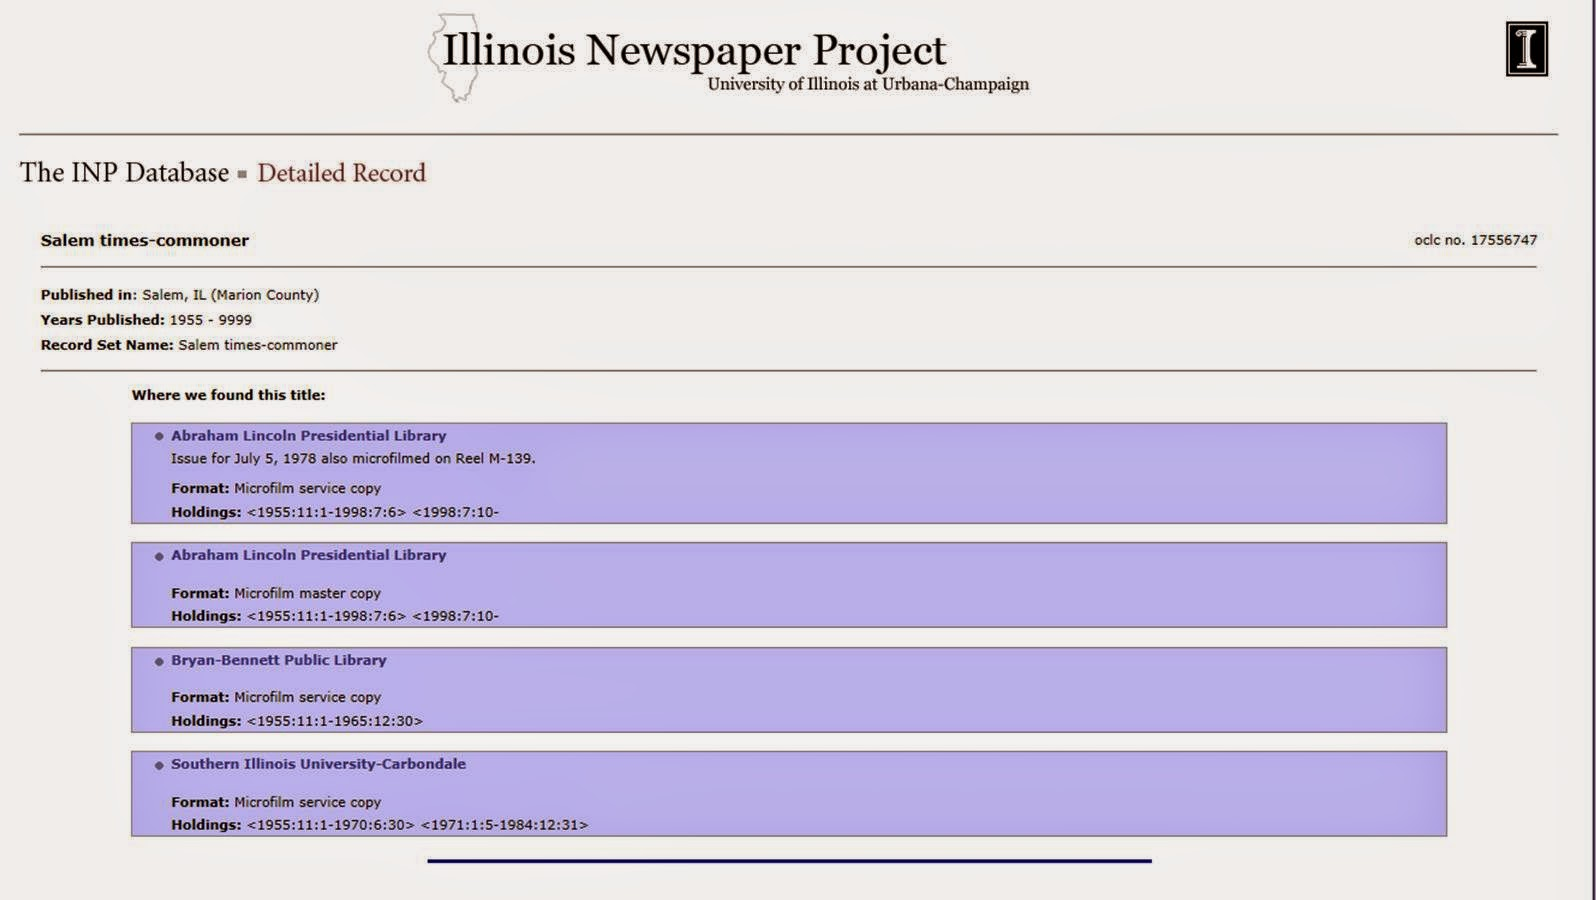 Illinois marion county salem - Http Www Library Illinois Edu Inp Results_full_public